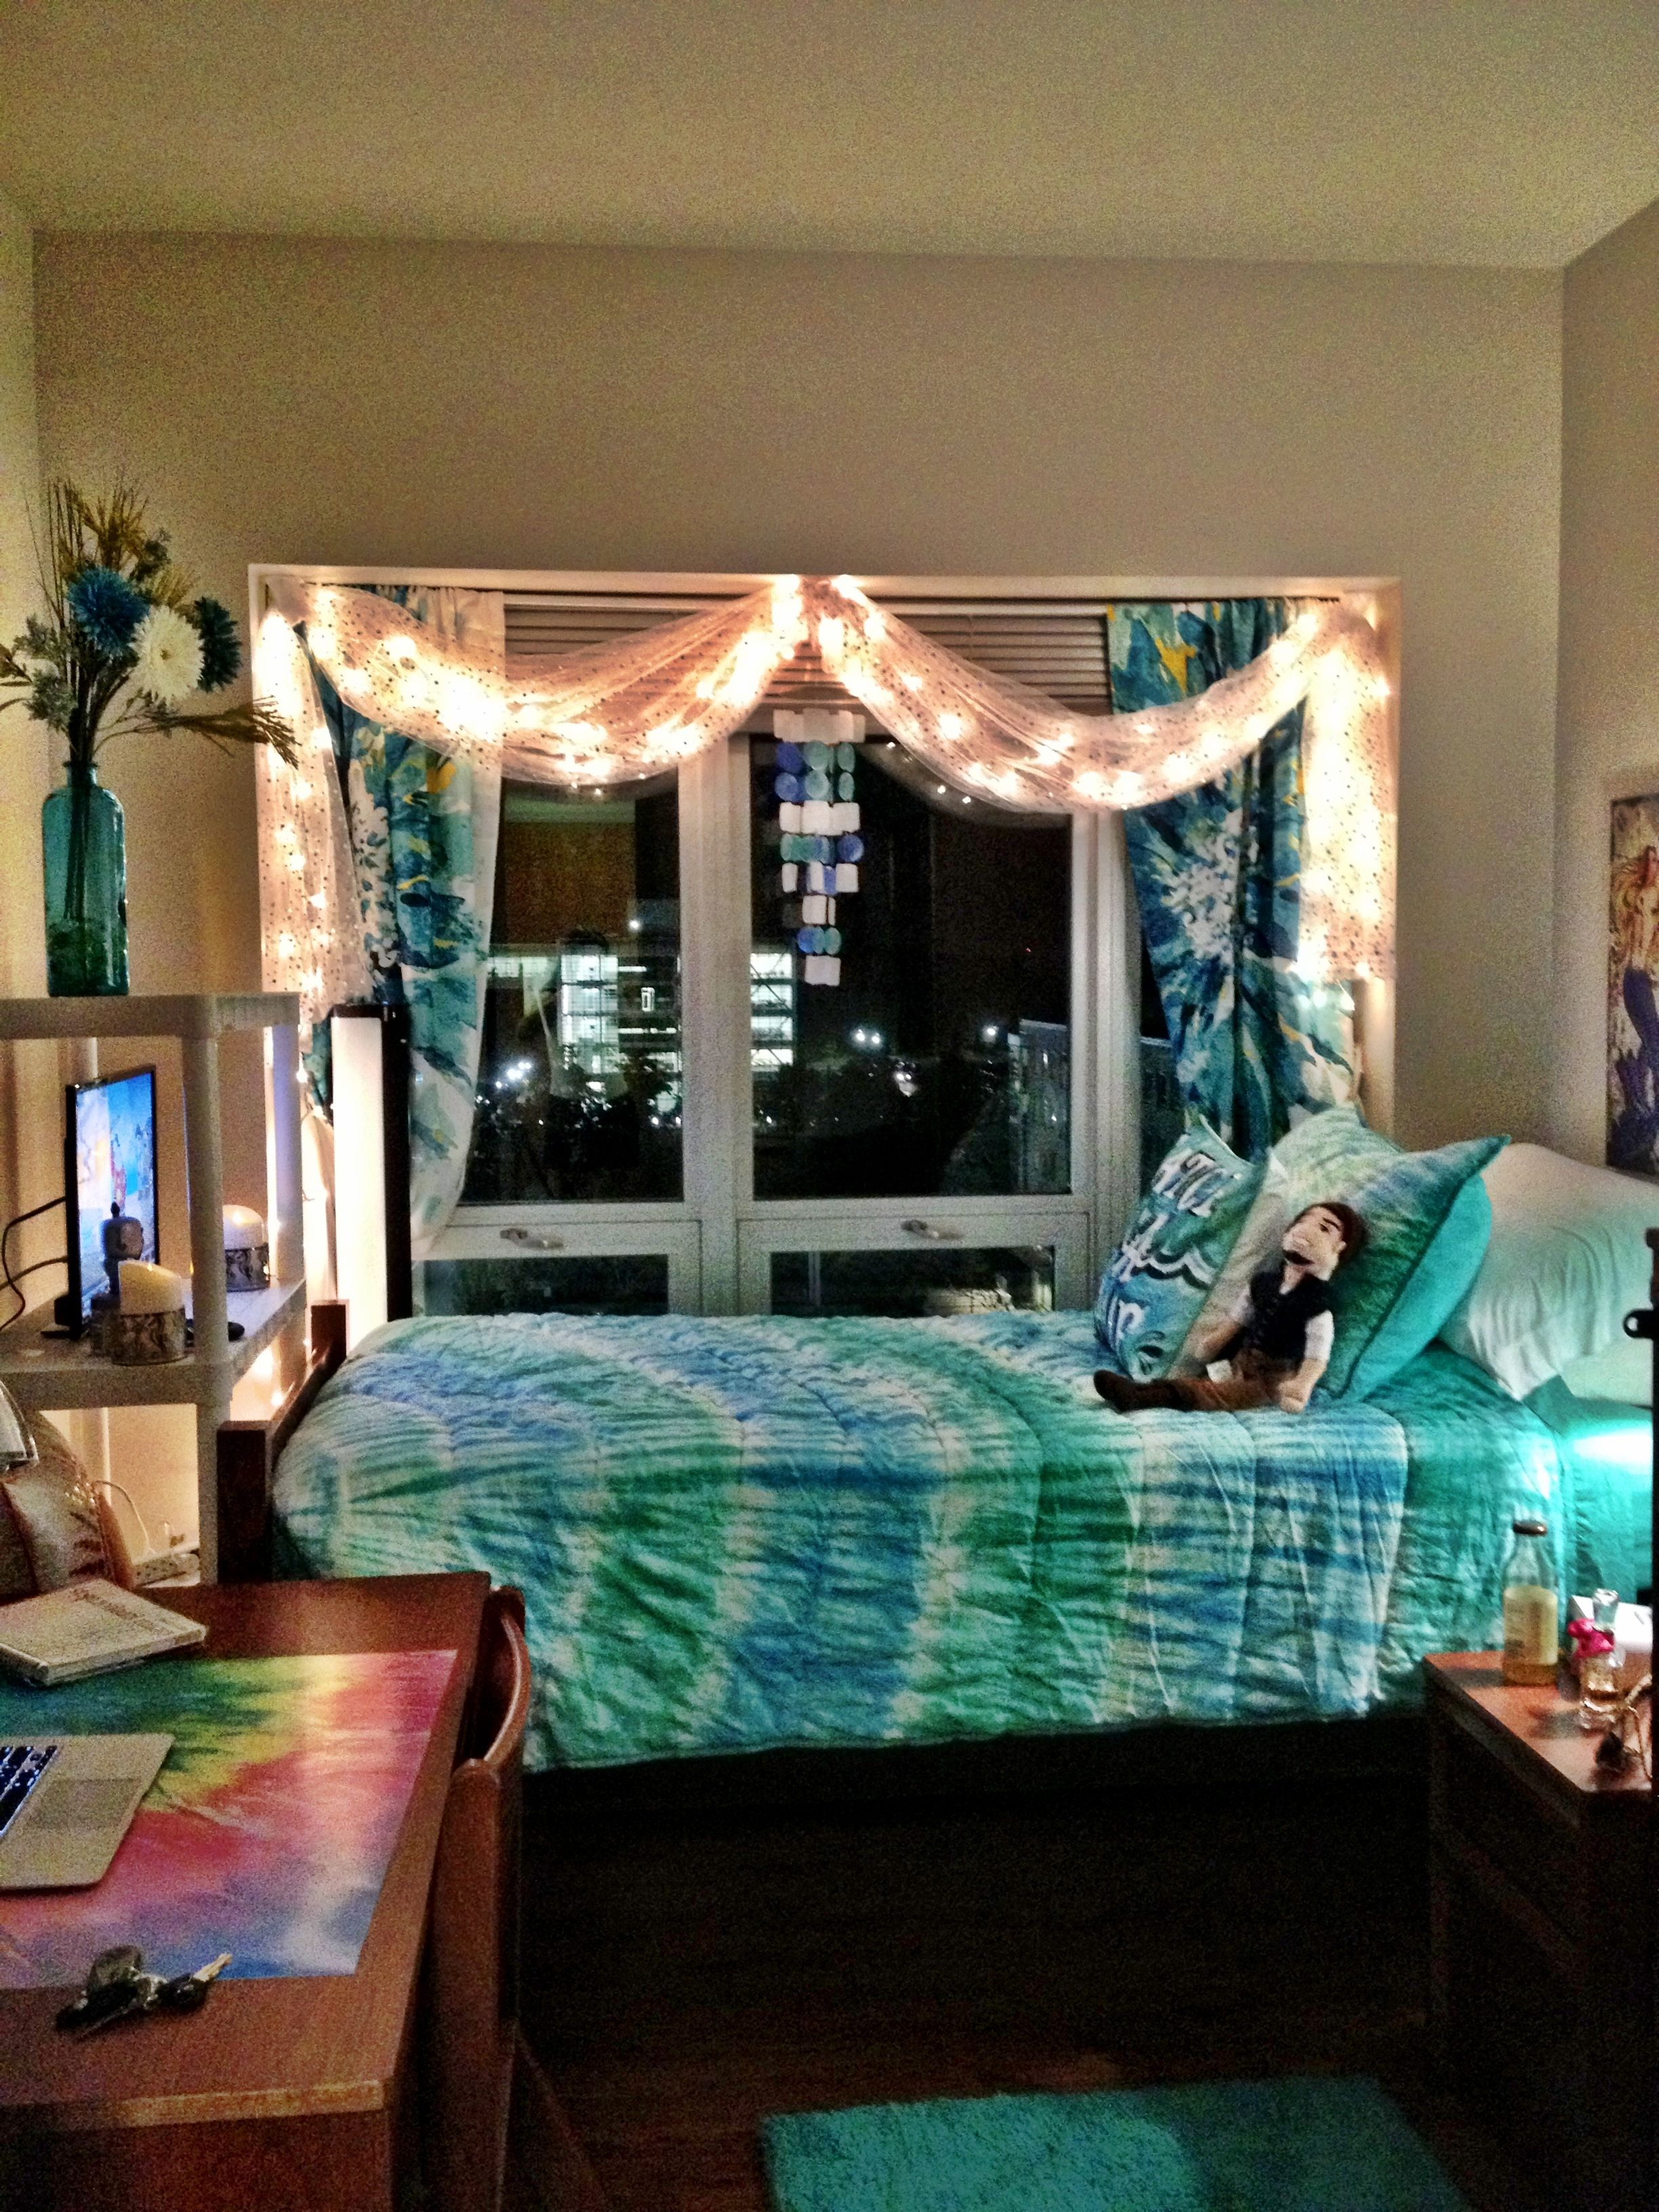 Ideas For Dorm Room: My Boootiful Dorm Room, Decorated By My Talented Mommm